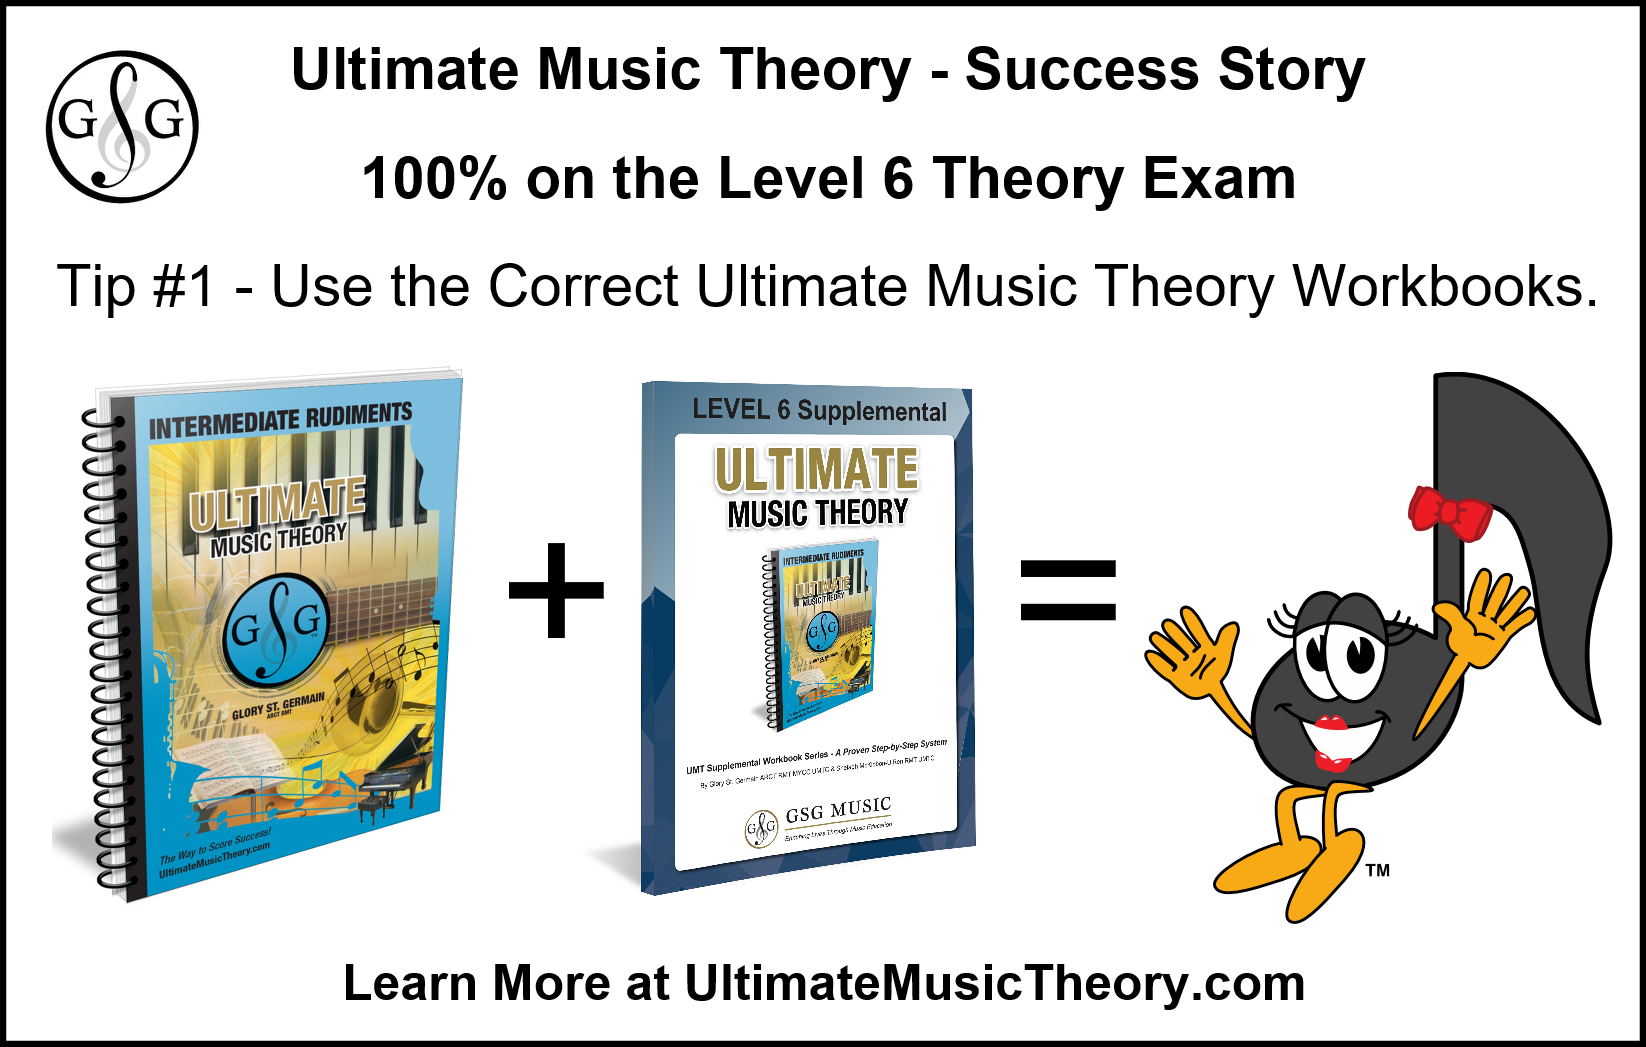 Ultimate Music Theory Perfect 100% on Level 6 Theory Exam